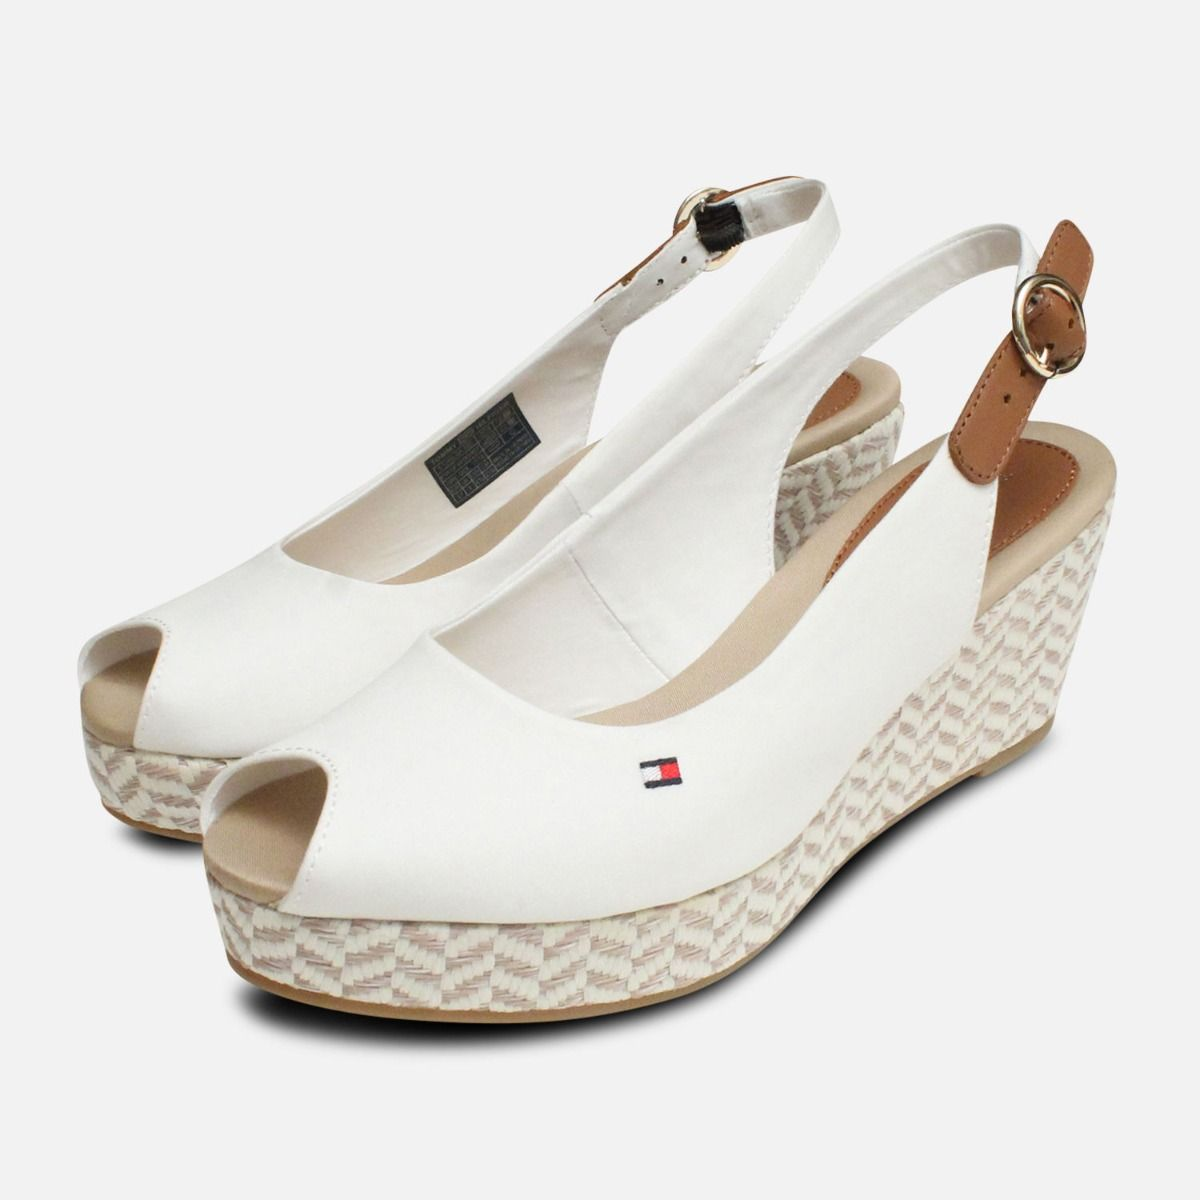 e2a4944a784 Tommy Hilfiger Womens Elba White Wedge Sandals